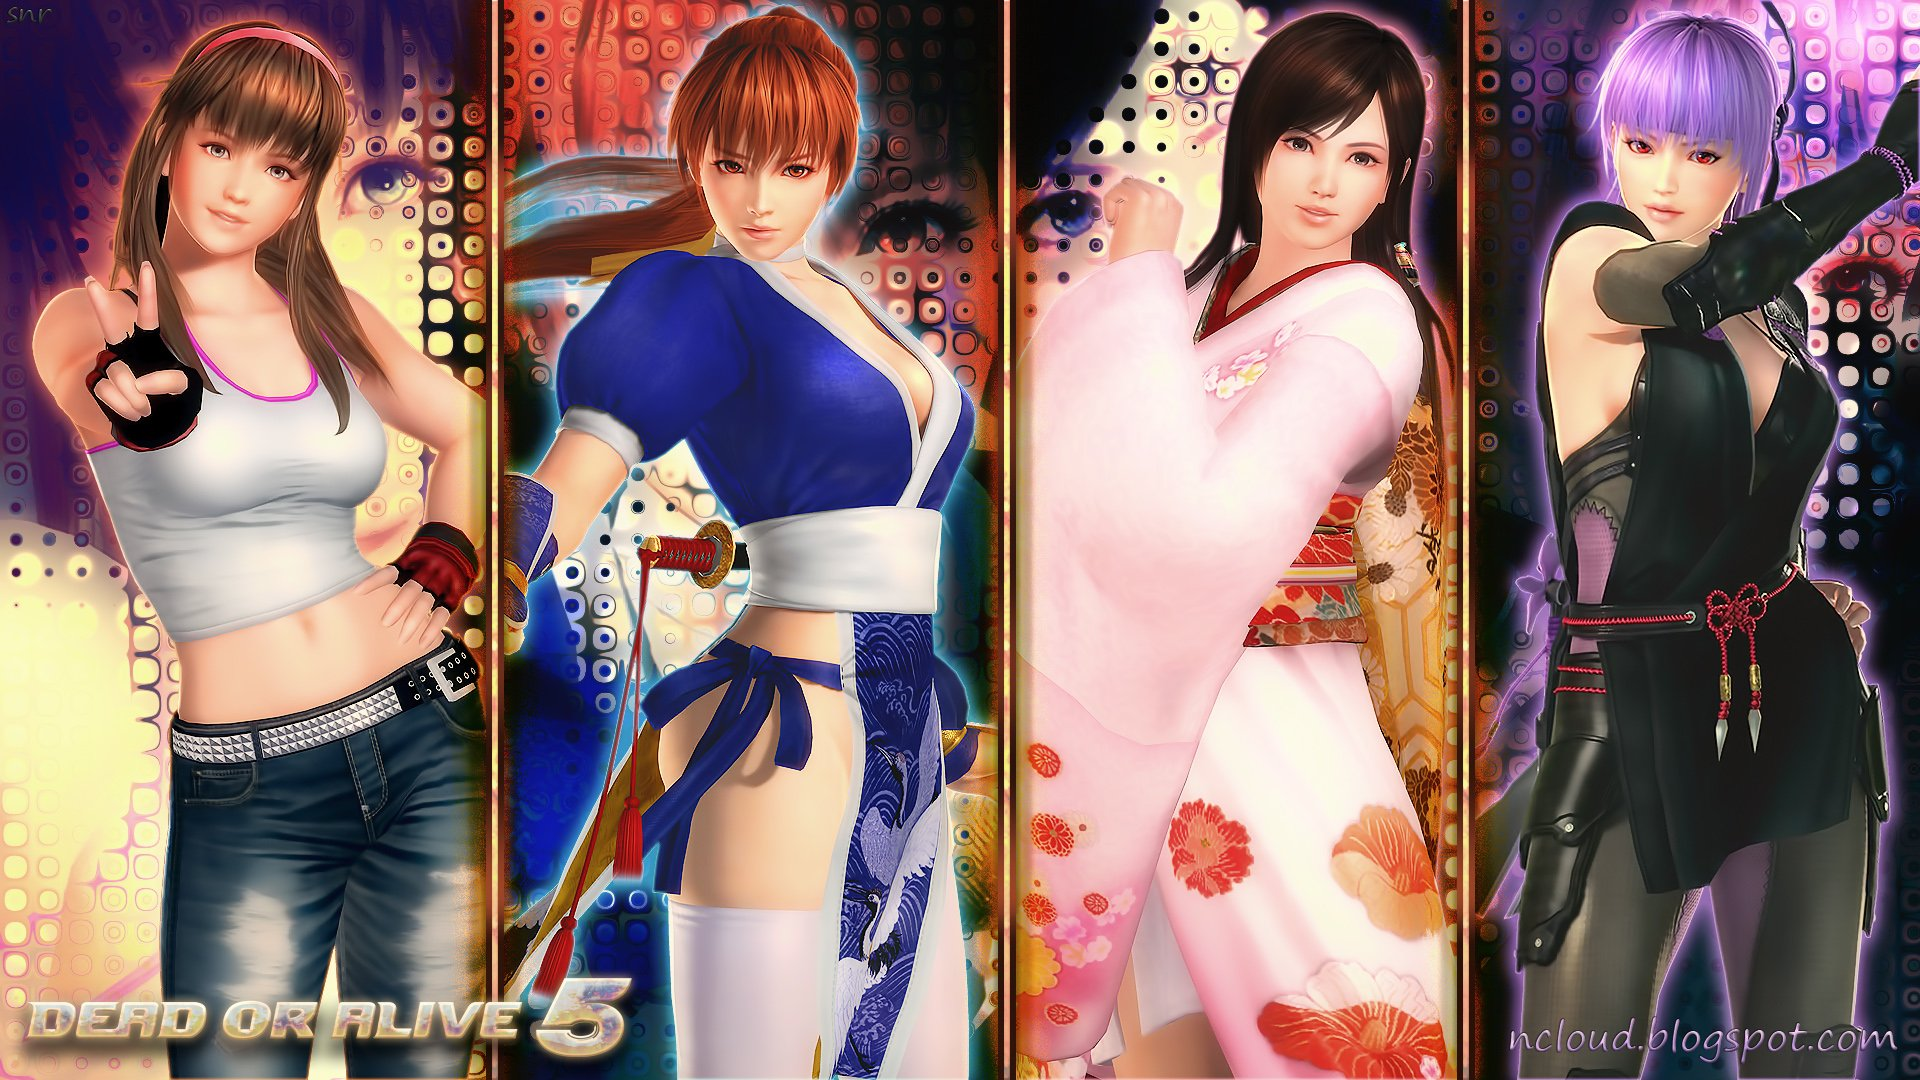 Games Movies Music Anime My Dead or Alive 5 Girls Wallpaper 1 1920x1080